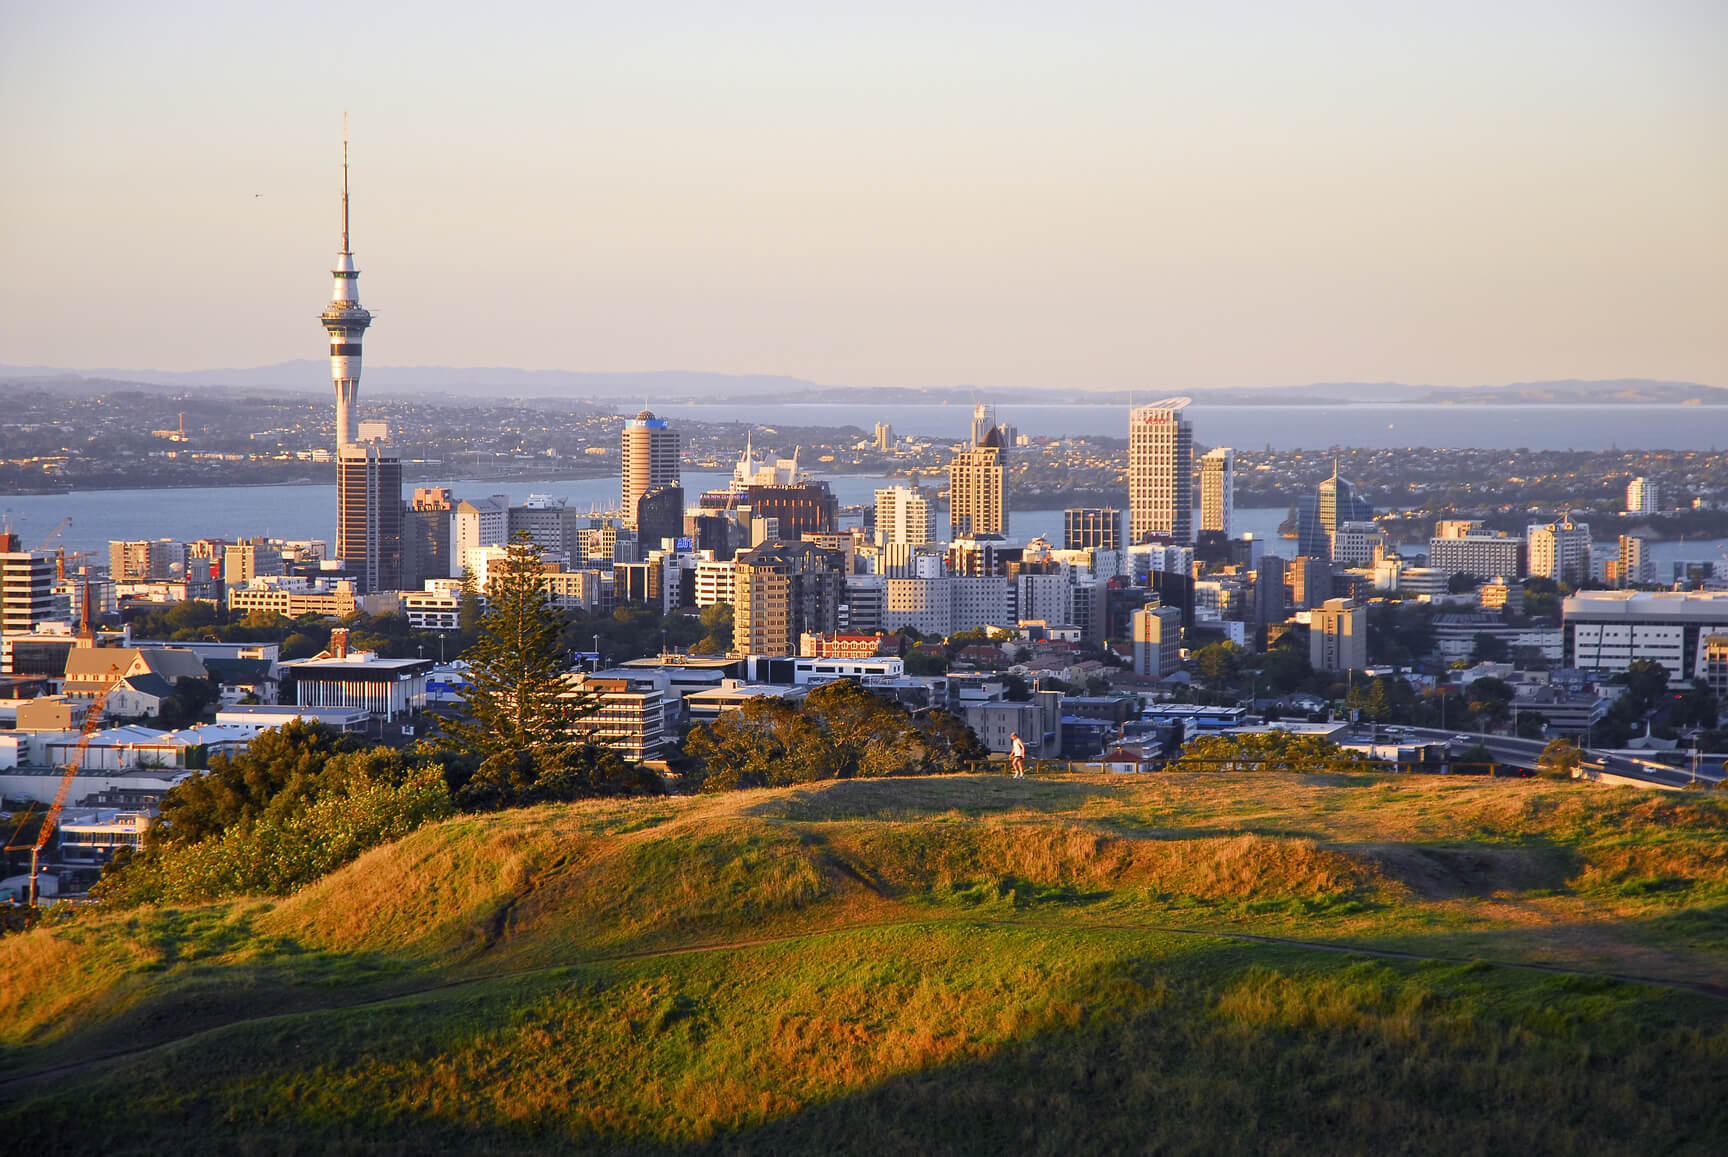 Bangkok, Thailand to Auckland, New Zealand for only $452 USD roundtrip